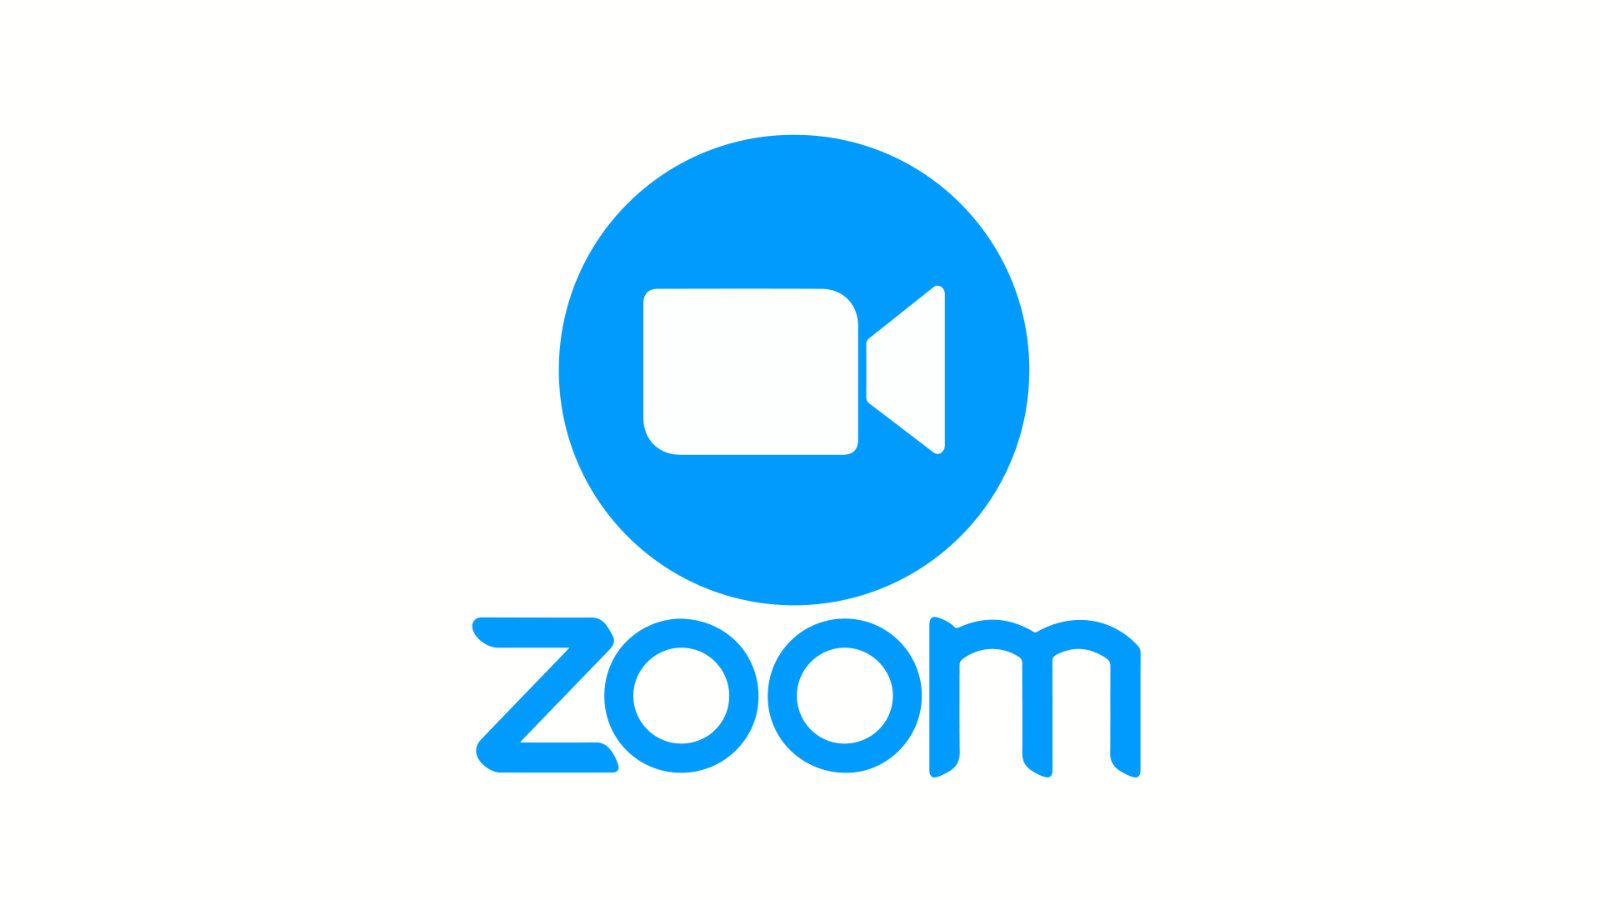 The Zoom logo on a blue background.